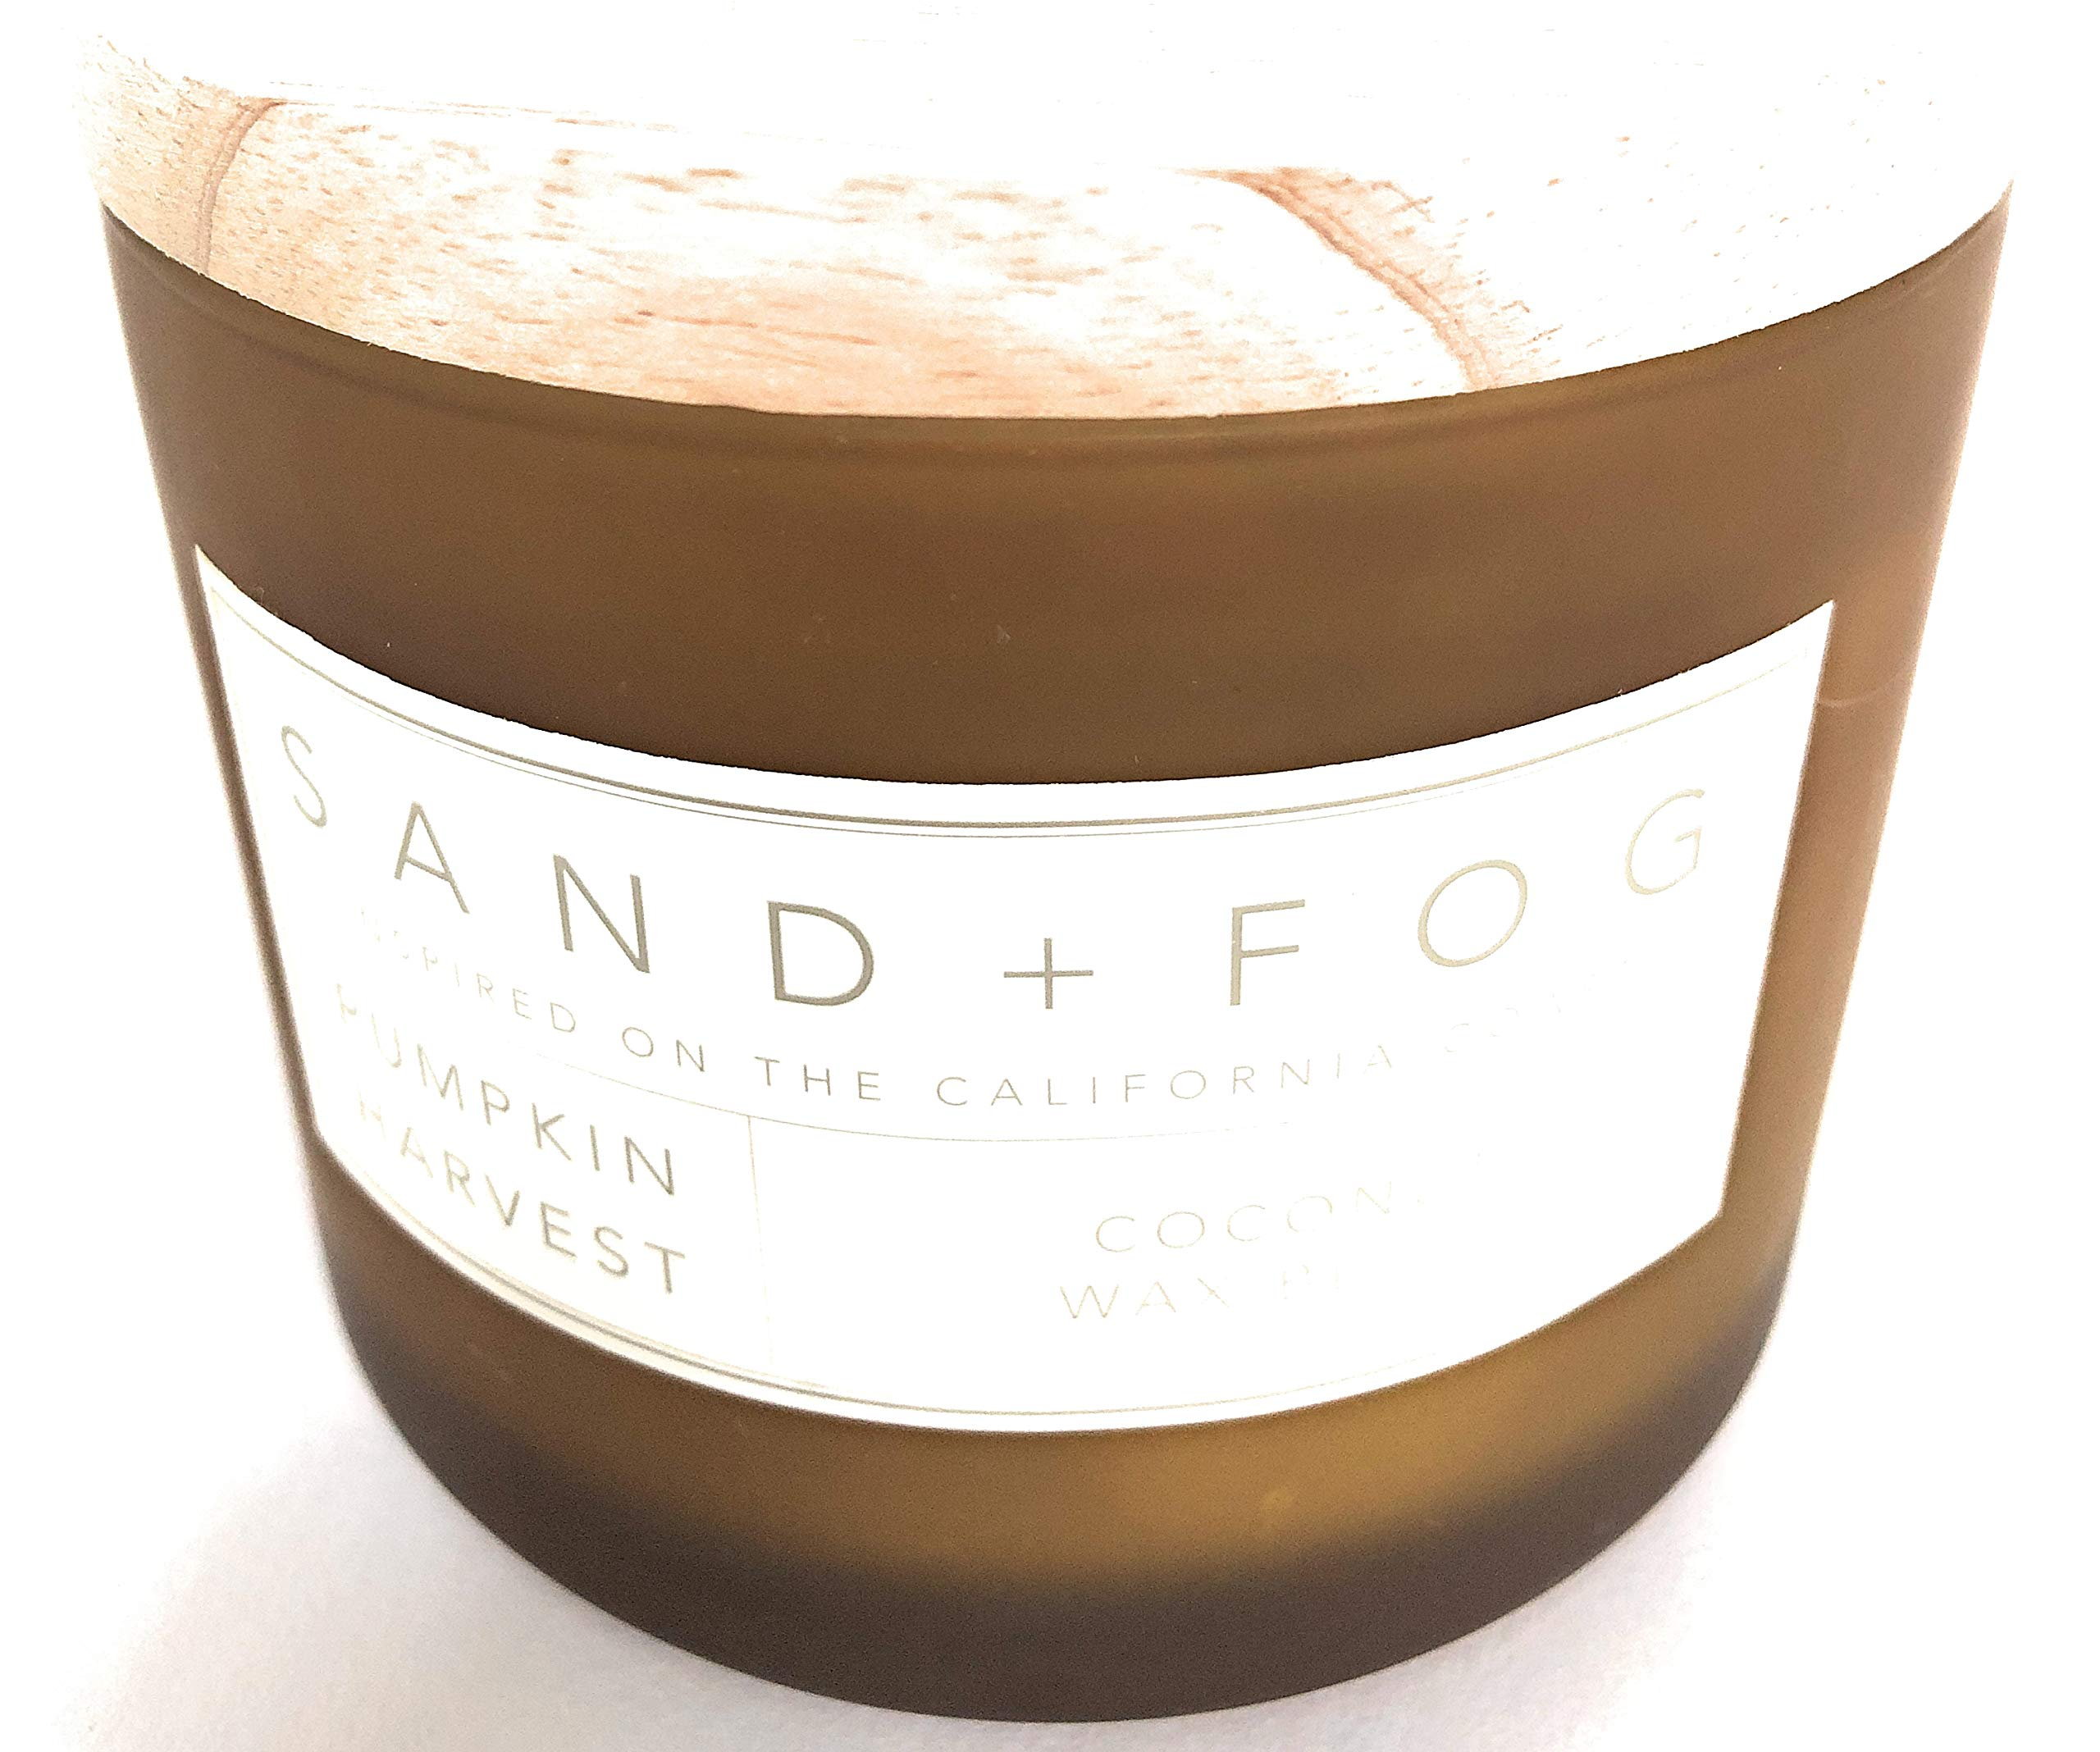 Sand And Fog Pumpkin Harvest Coconut Wax Blend Double Wick Candle with Wooden Lid 12 Oz